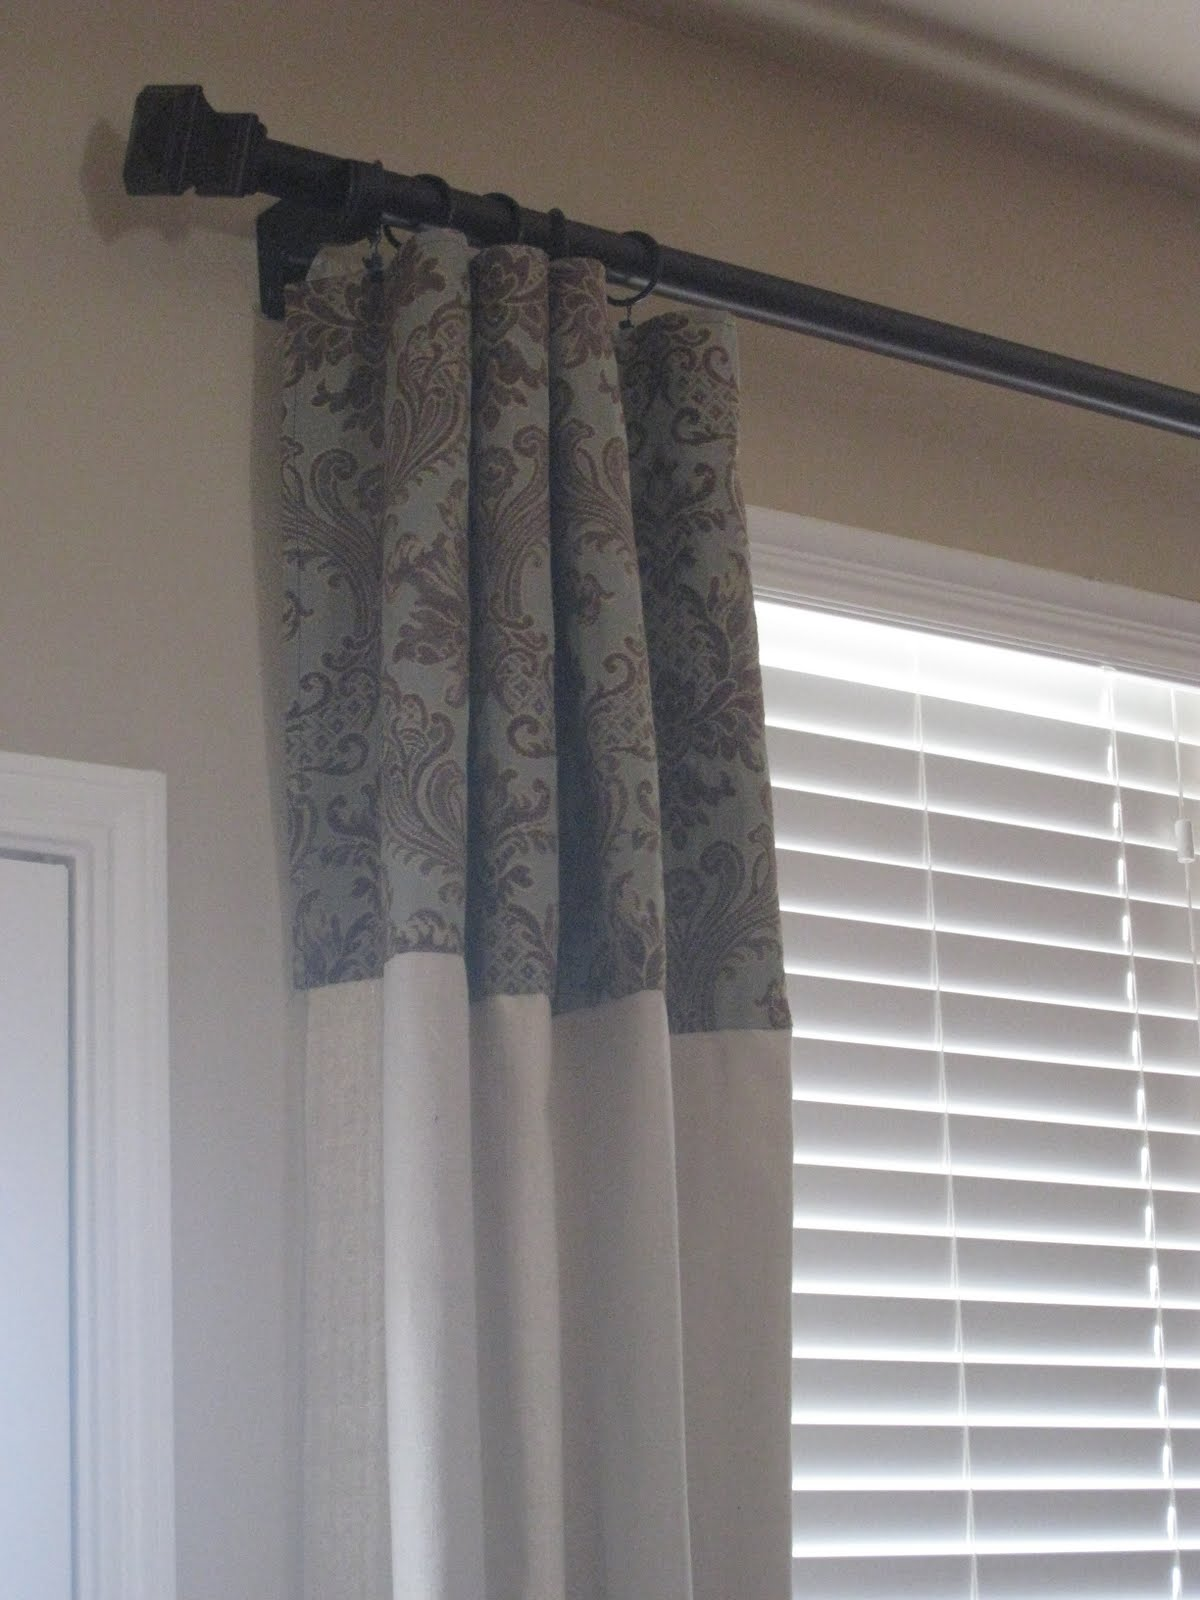 Gorgeous Drapes From Drop Cloths Shanty2chic Cafemom